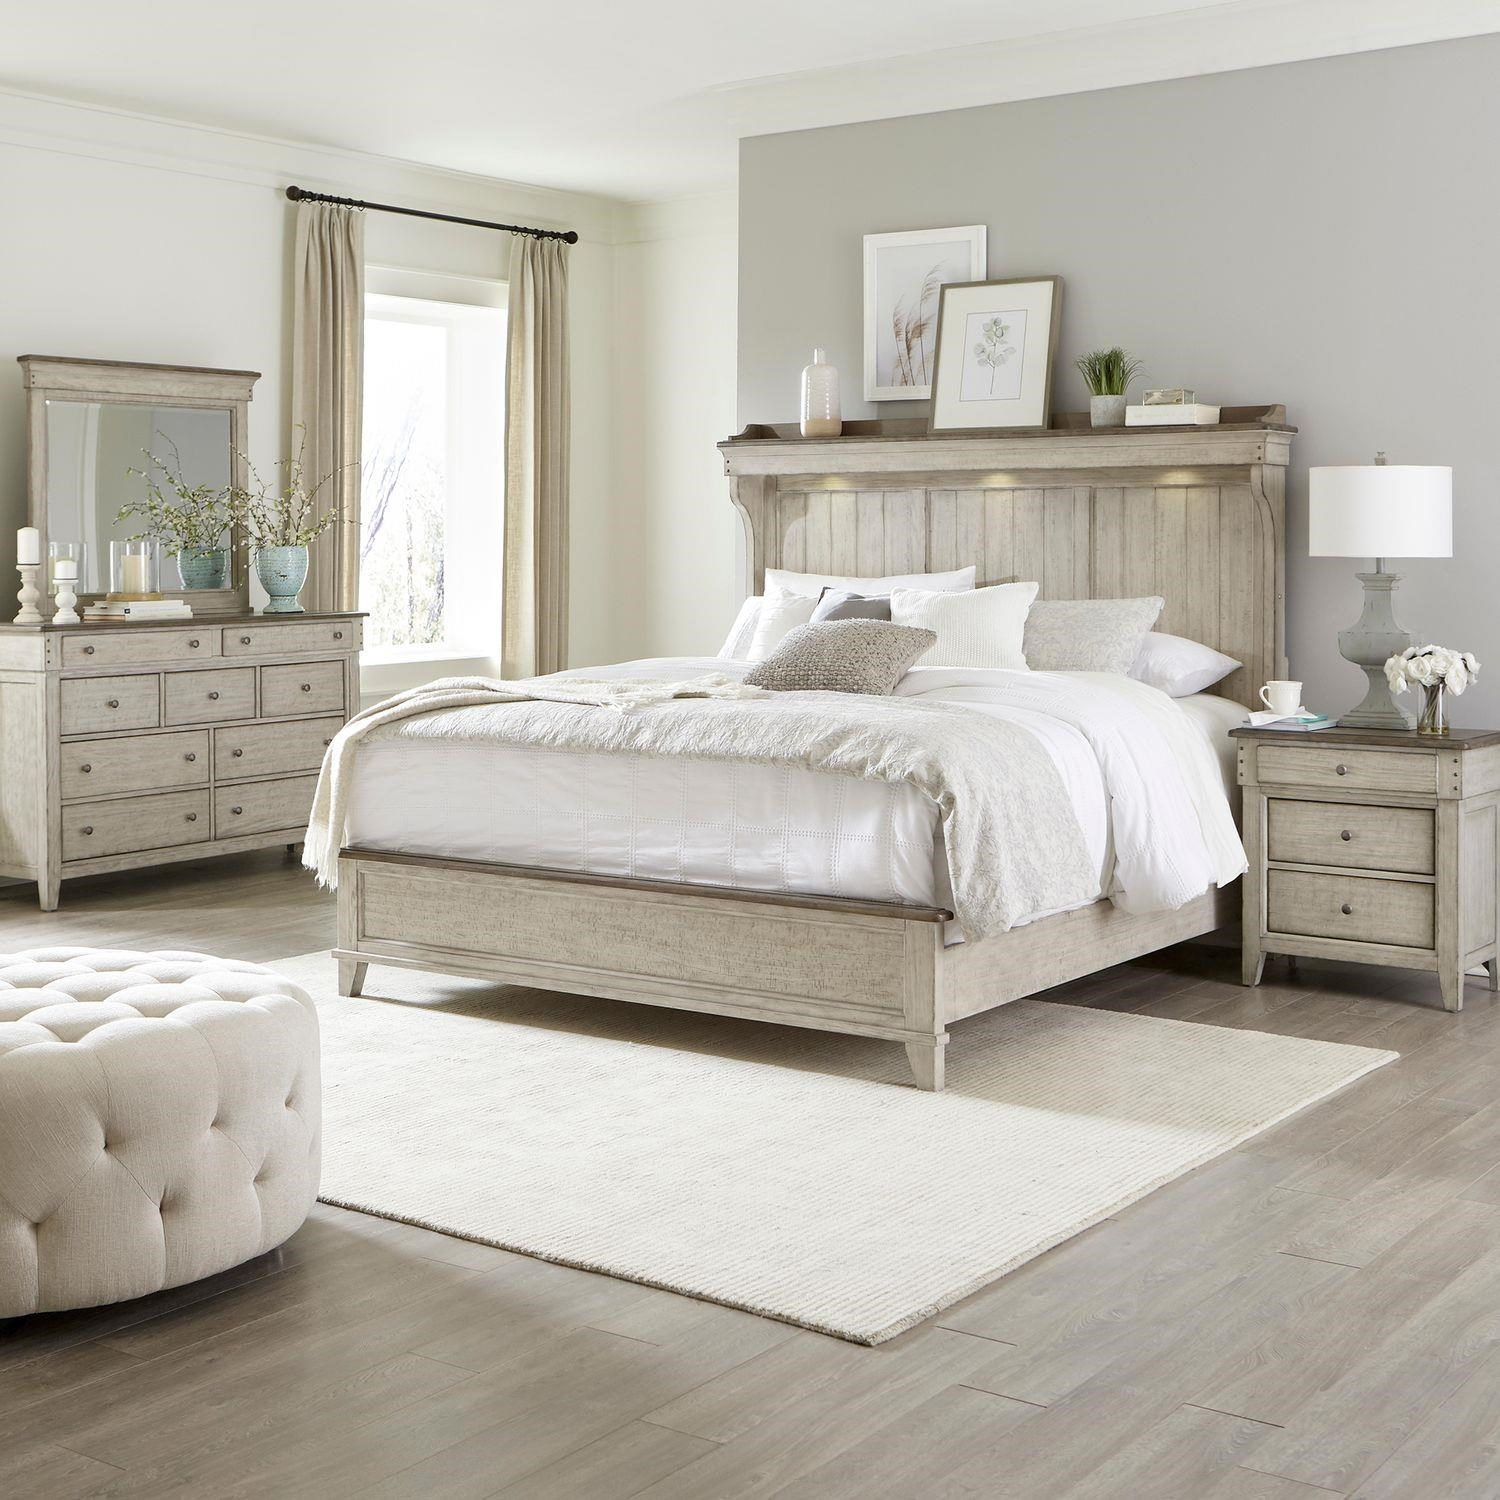 Ivy Hollow King Mantel, Dresser, Mirror, Nightstand by Liberty Furniture at Johnny Janosik